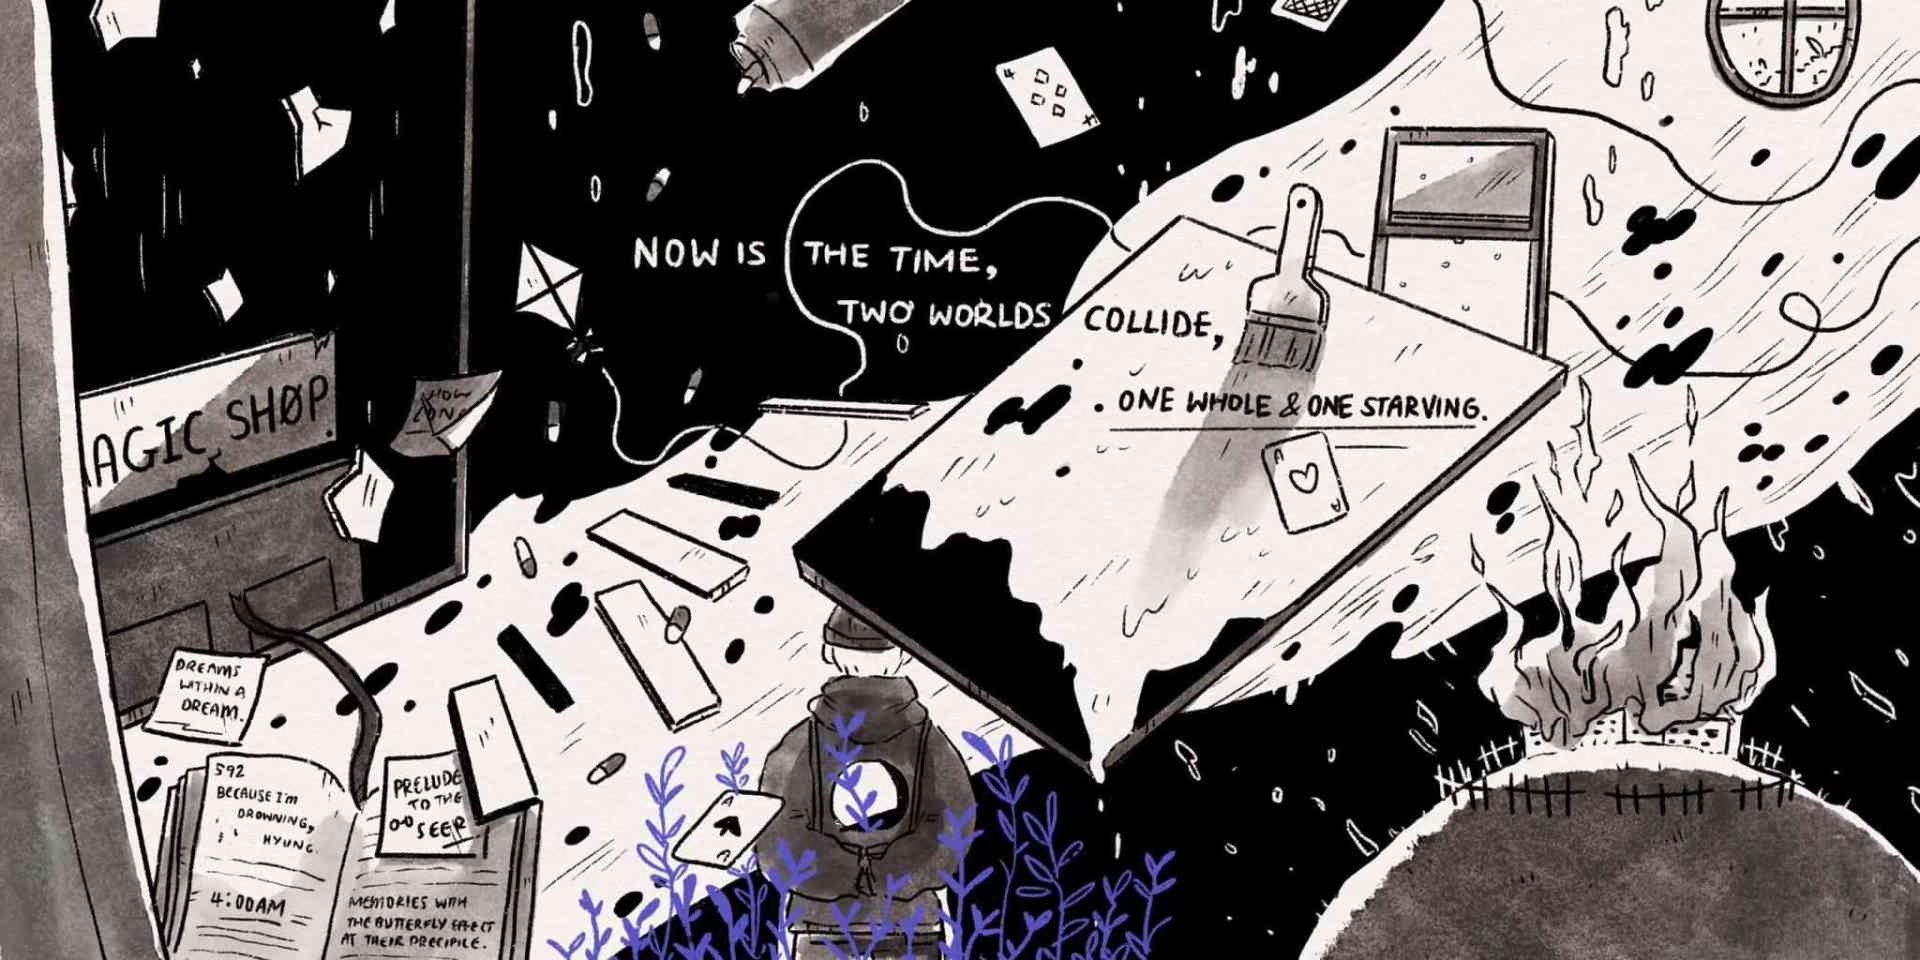 A black and white hand-drawn illustration showing a chaotic scene that combine images of objects like books, paintings, cards, and fire.